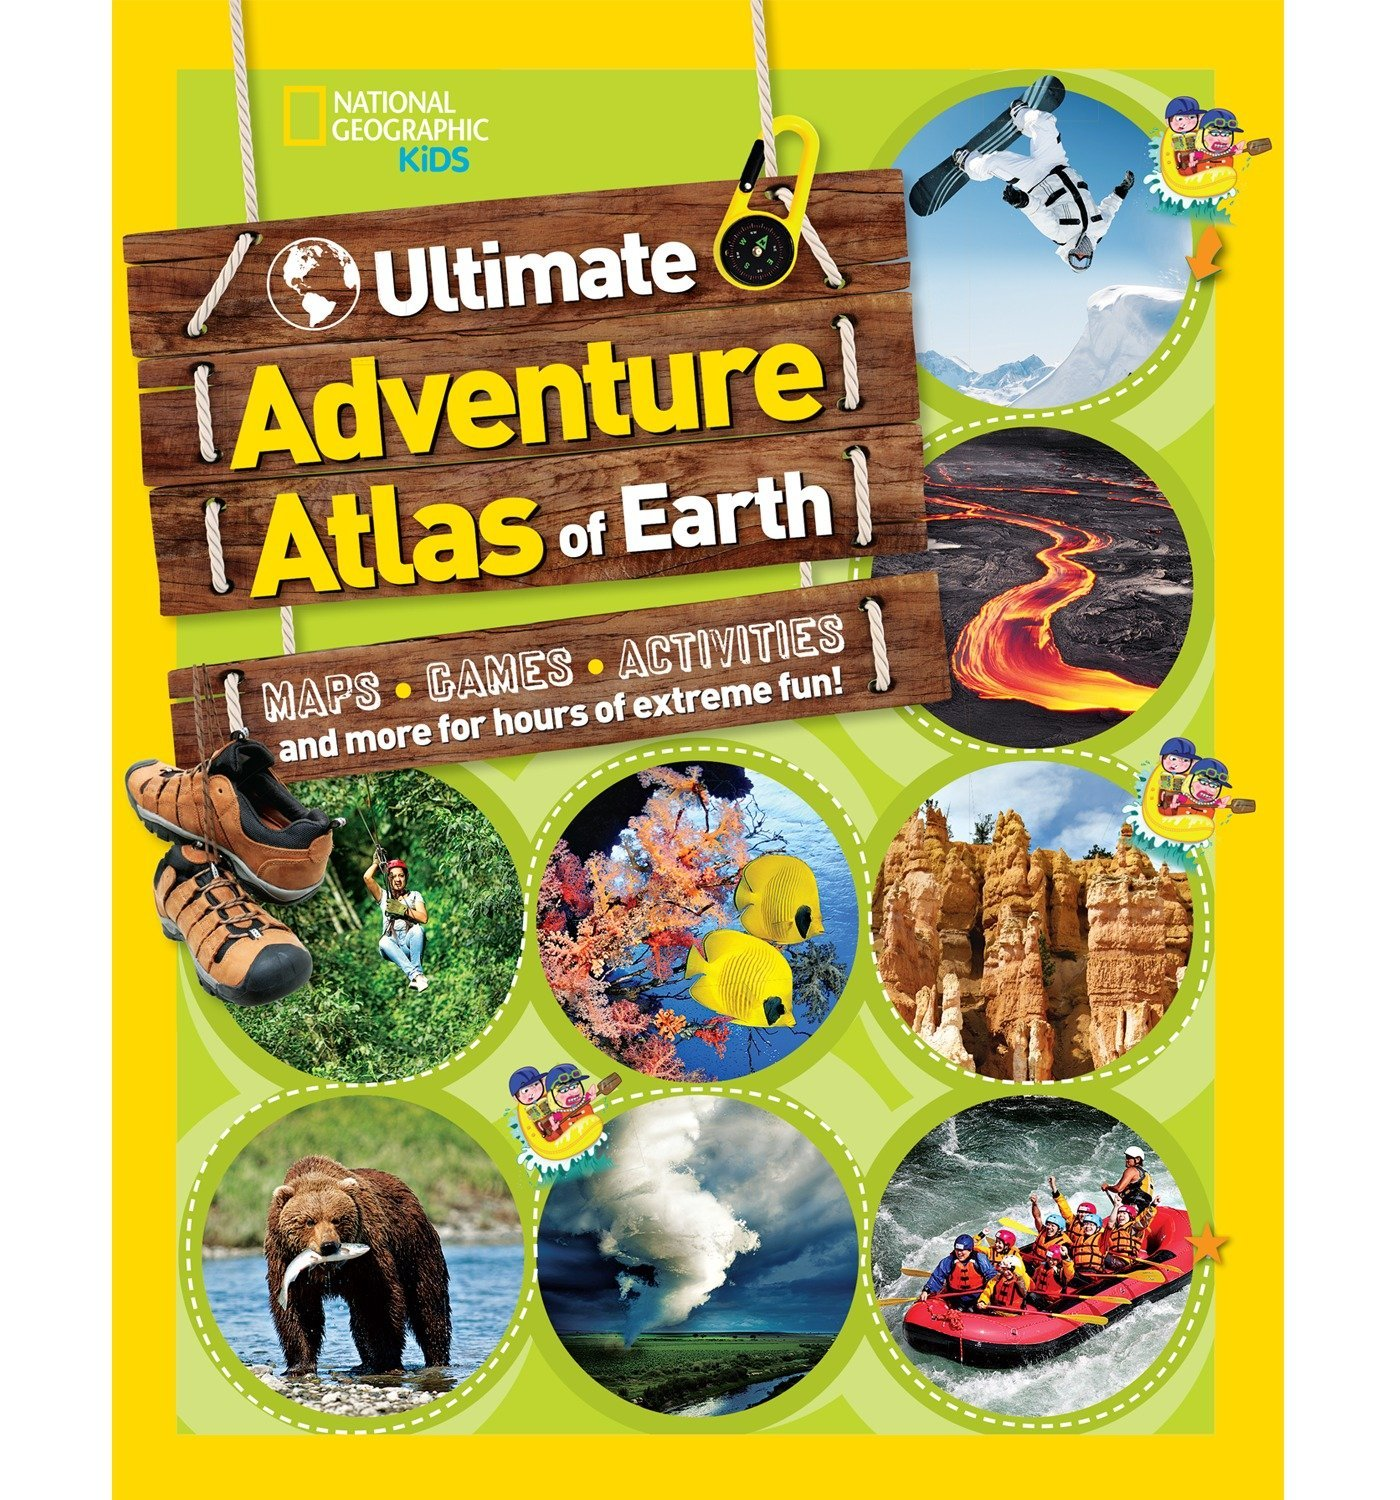 The Ultimate Adventure Atlas of Earth: Maps, Games, Activities, and More for Hours of Extreme Fun! National Geographic Kids Idioma Inglés: Amazon.es: National Geographic Kids: Libros en idiomas extranjeros